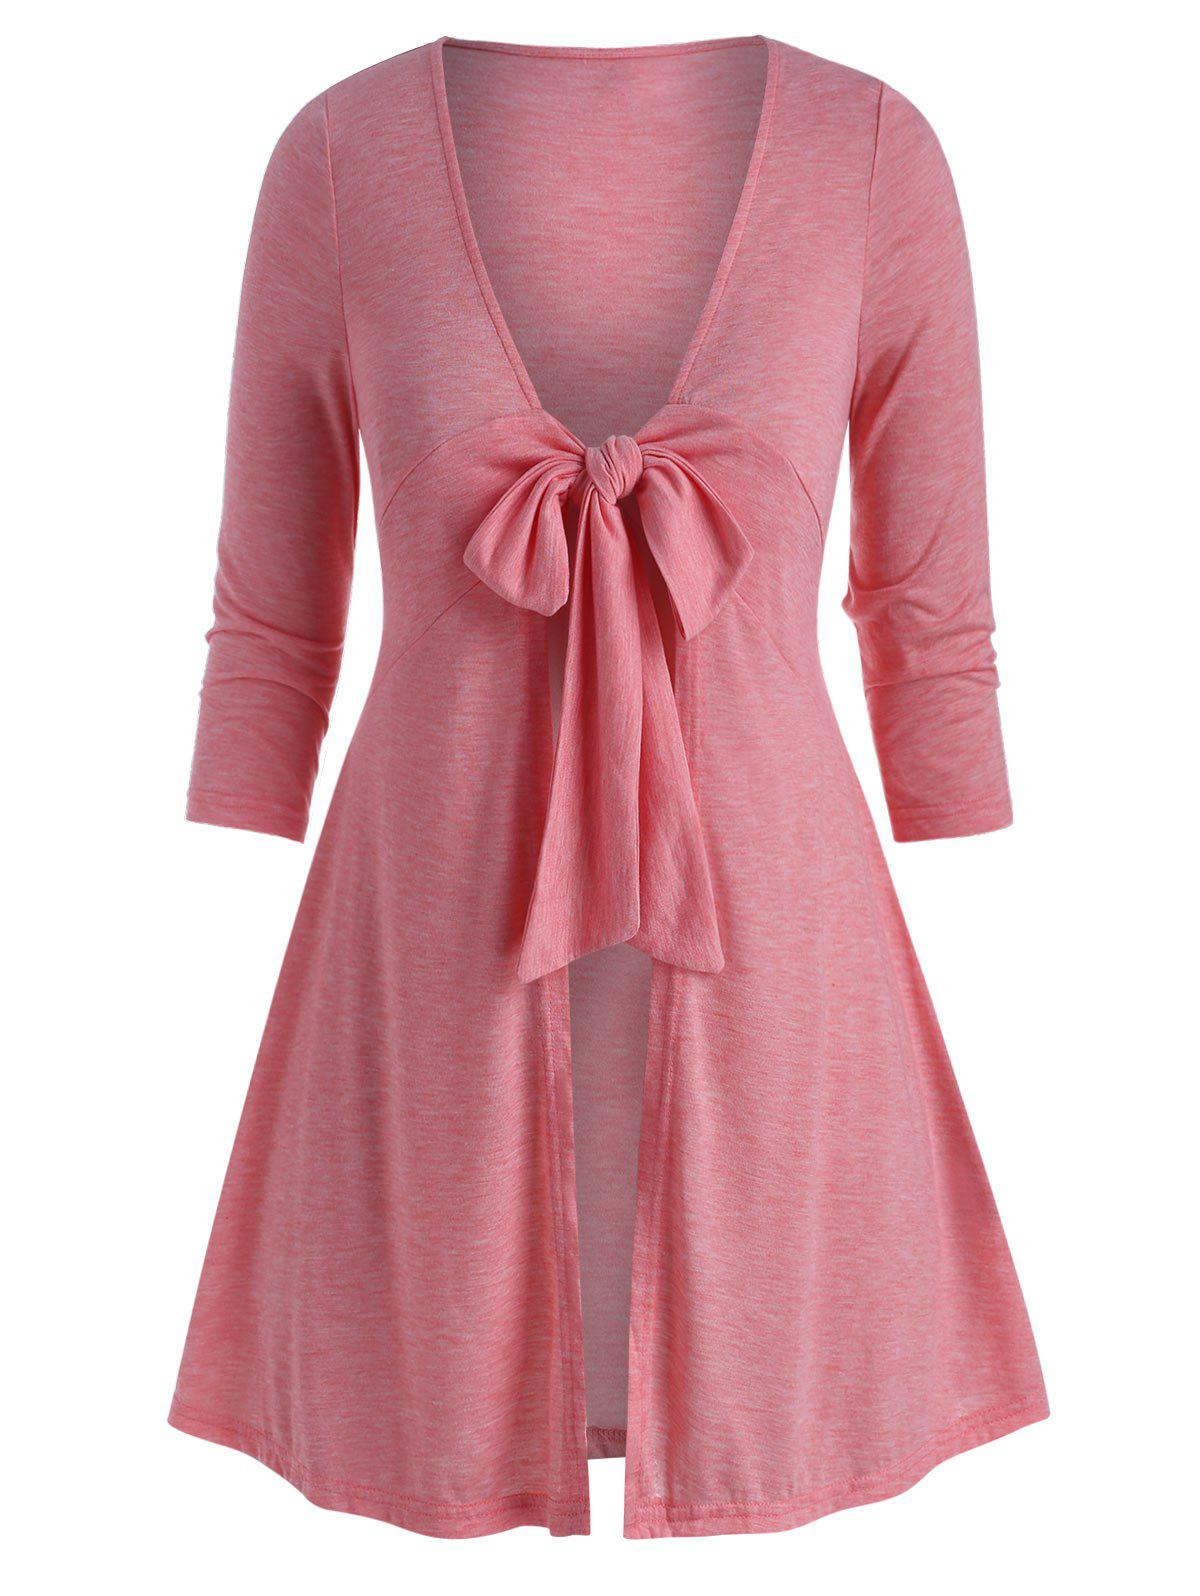 Plus Size Front Tie Plunge Long Tunic Tee - LIGHT PINK 5X